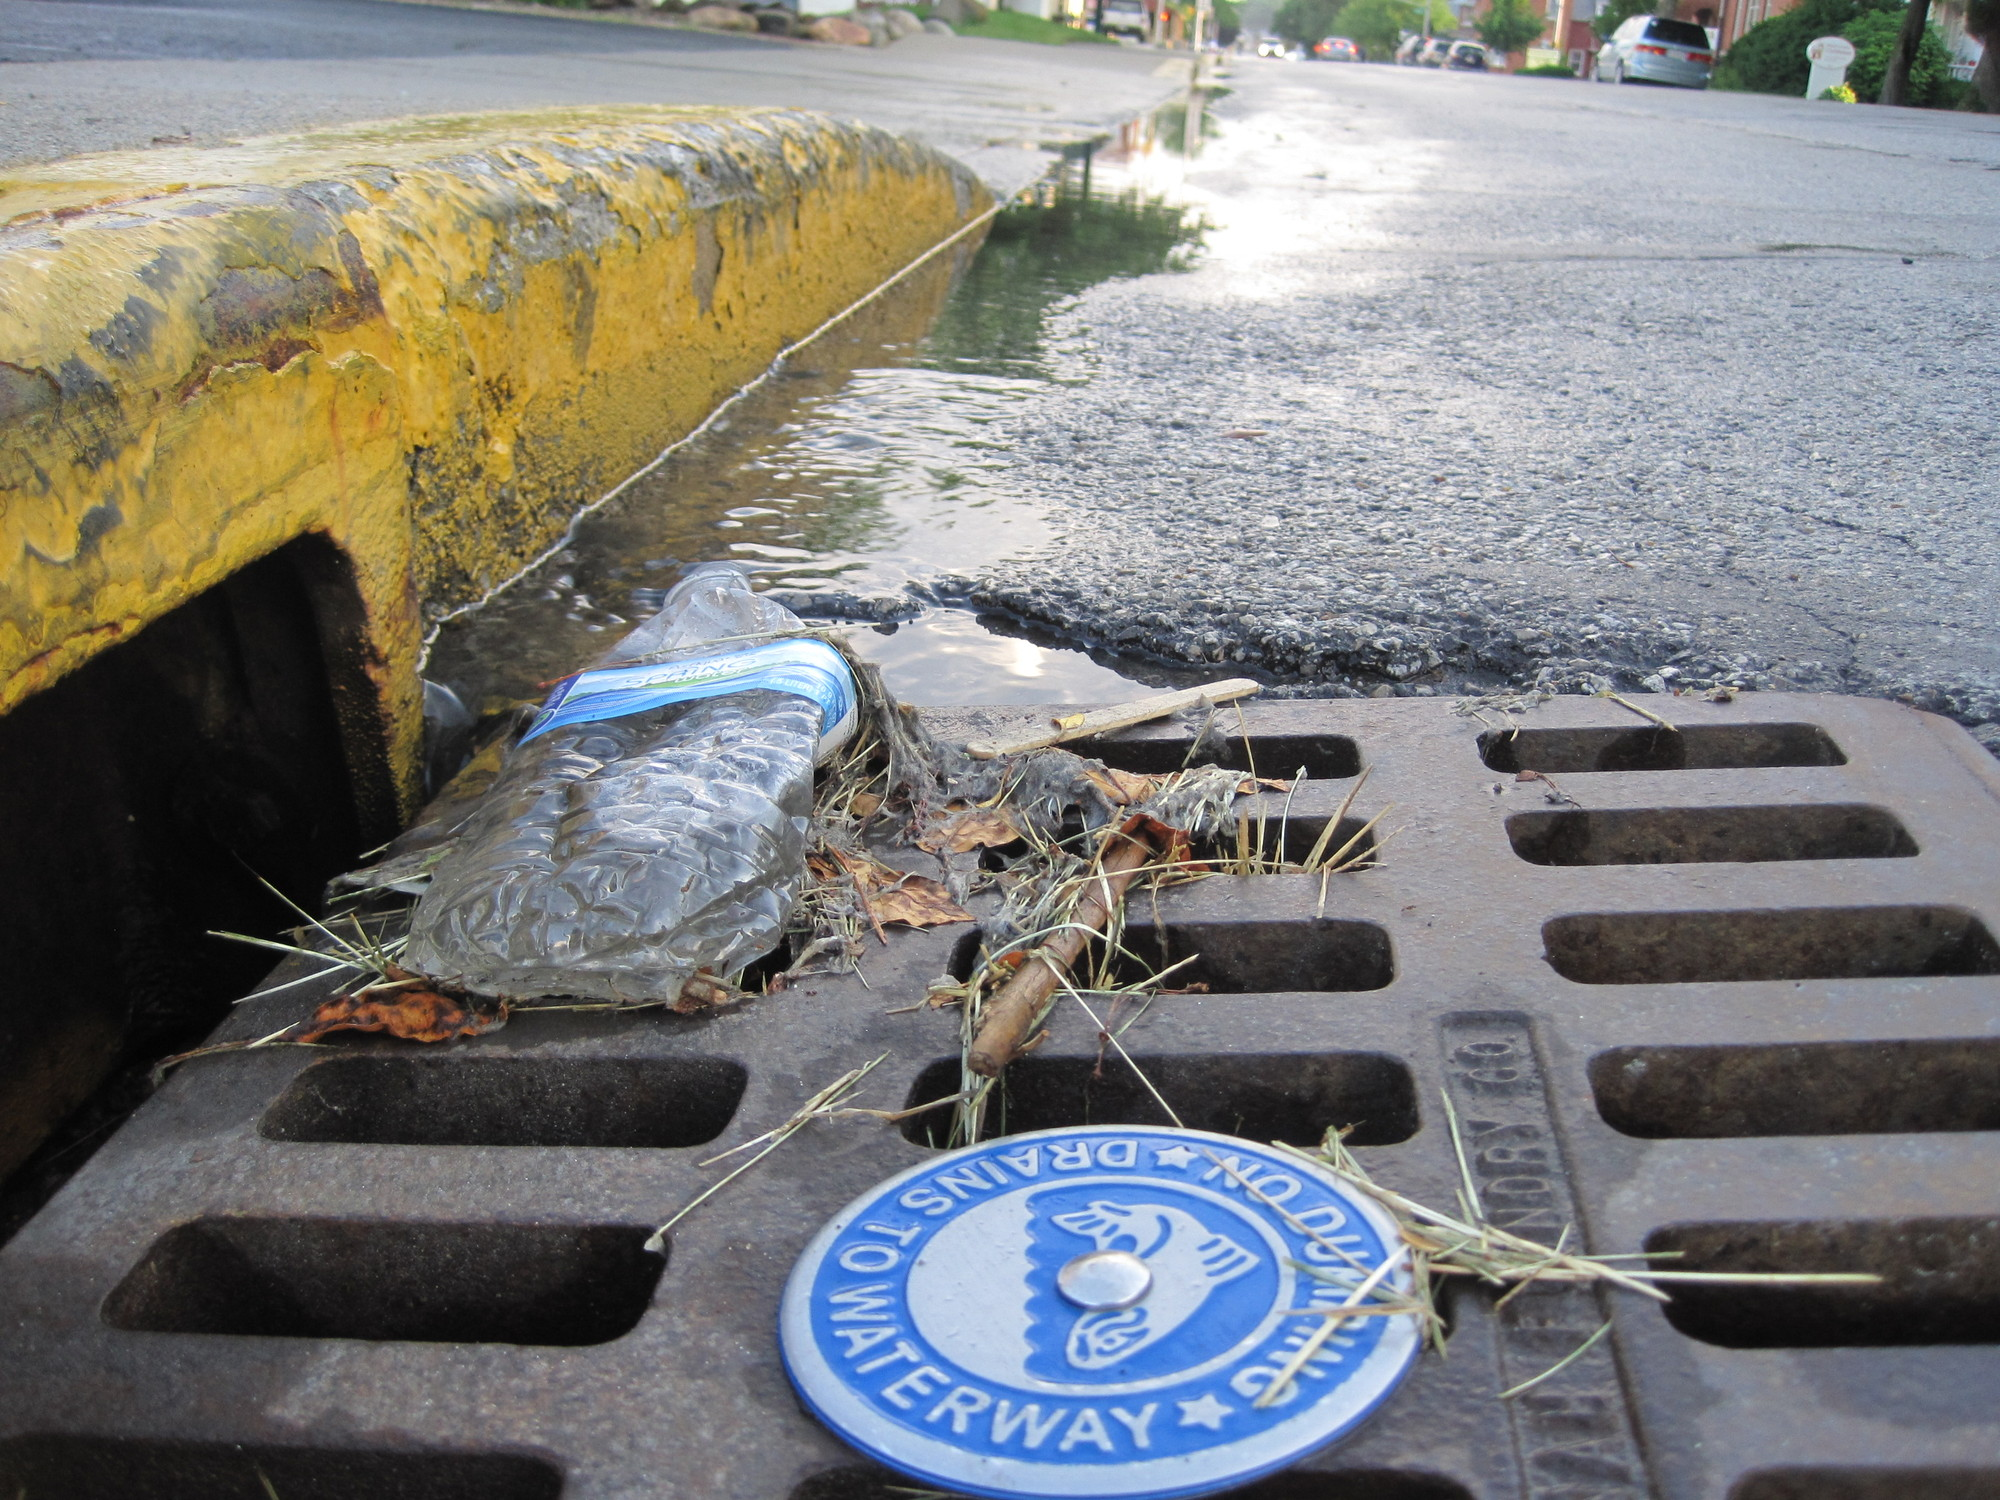 Over time trash, grass clippings, and sediment can accumulate around a storm drain inlet and cause drainage issues.